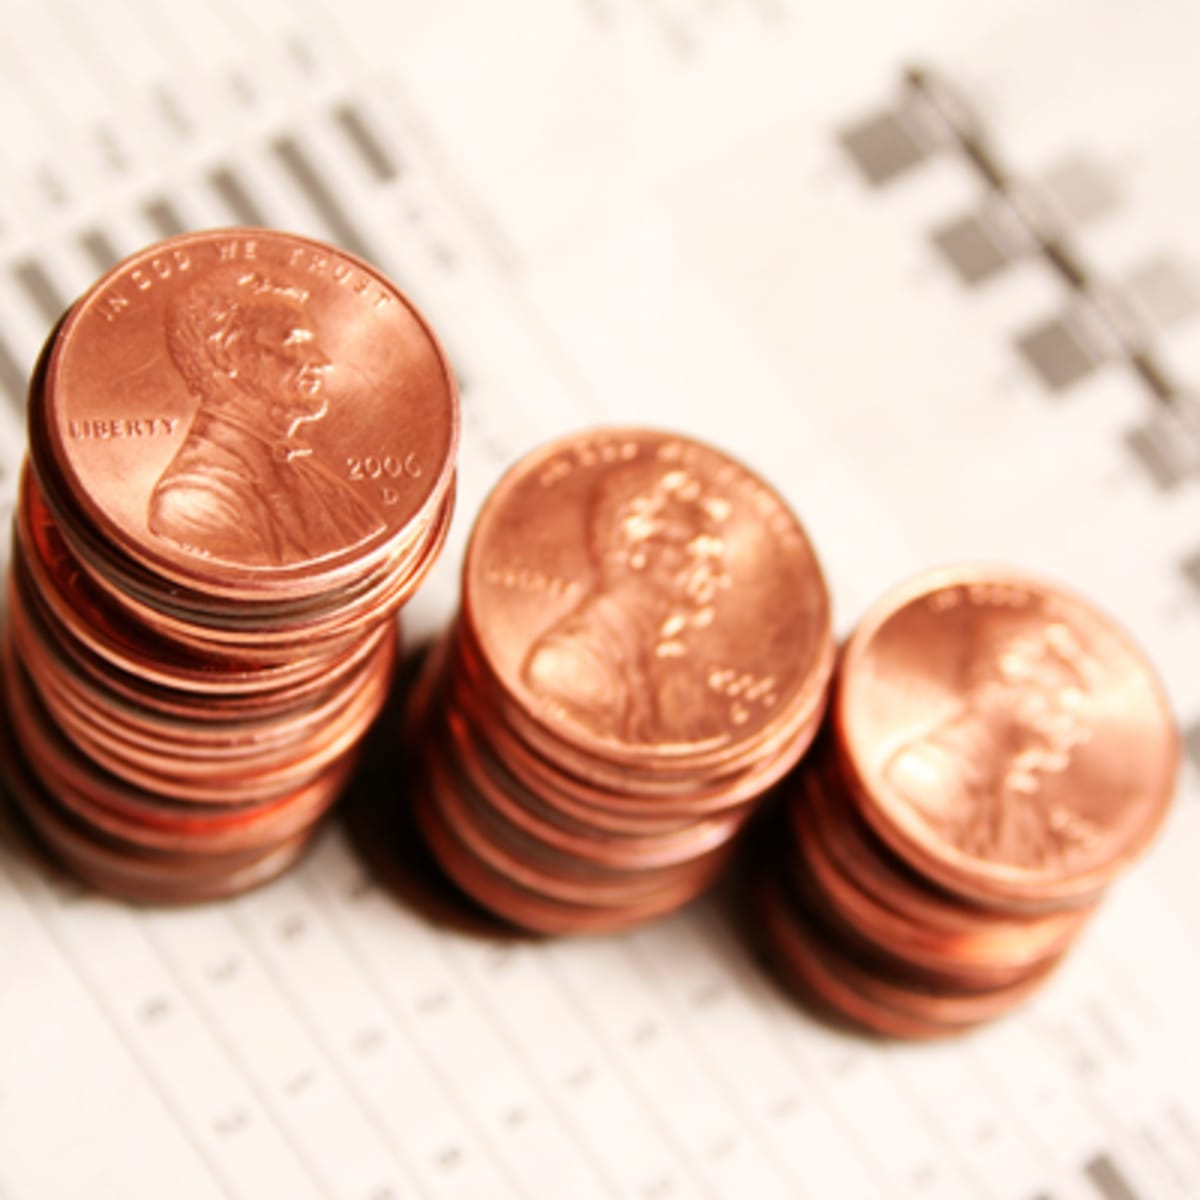 How To Buy Penny Stocks The Risks And Rewards Thestreet